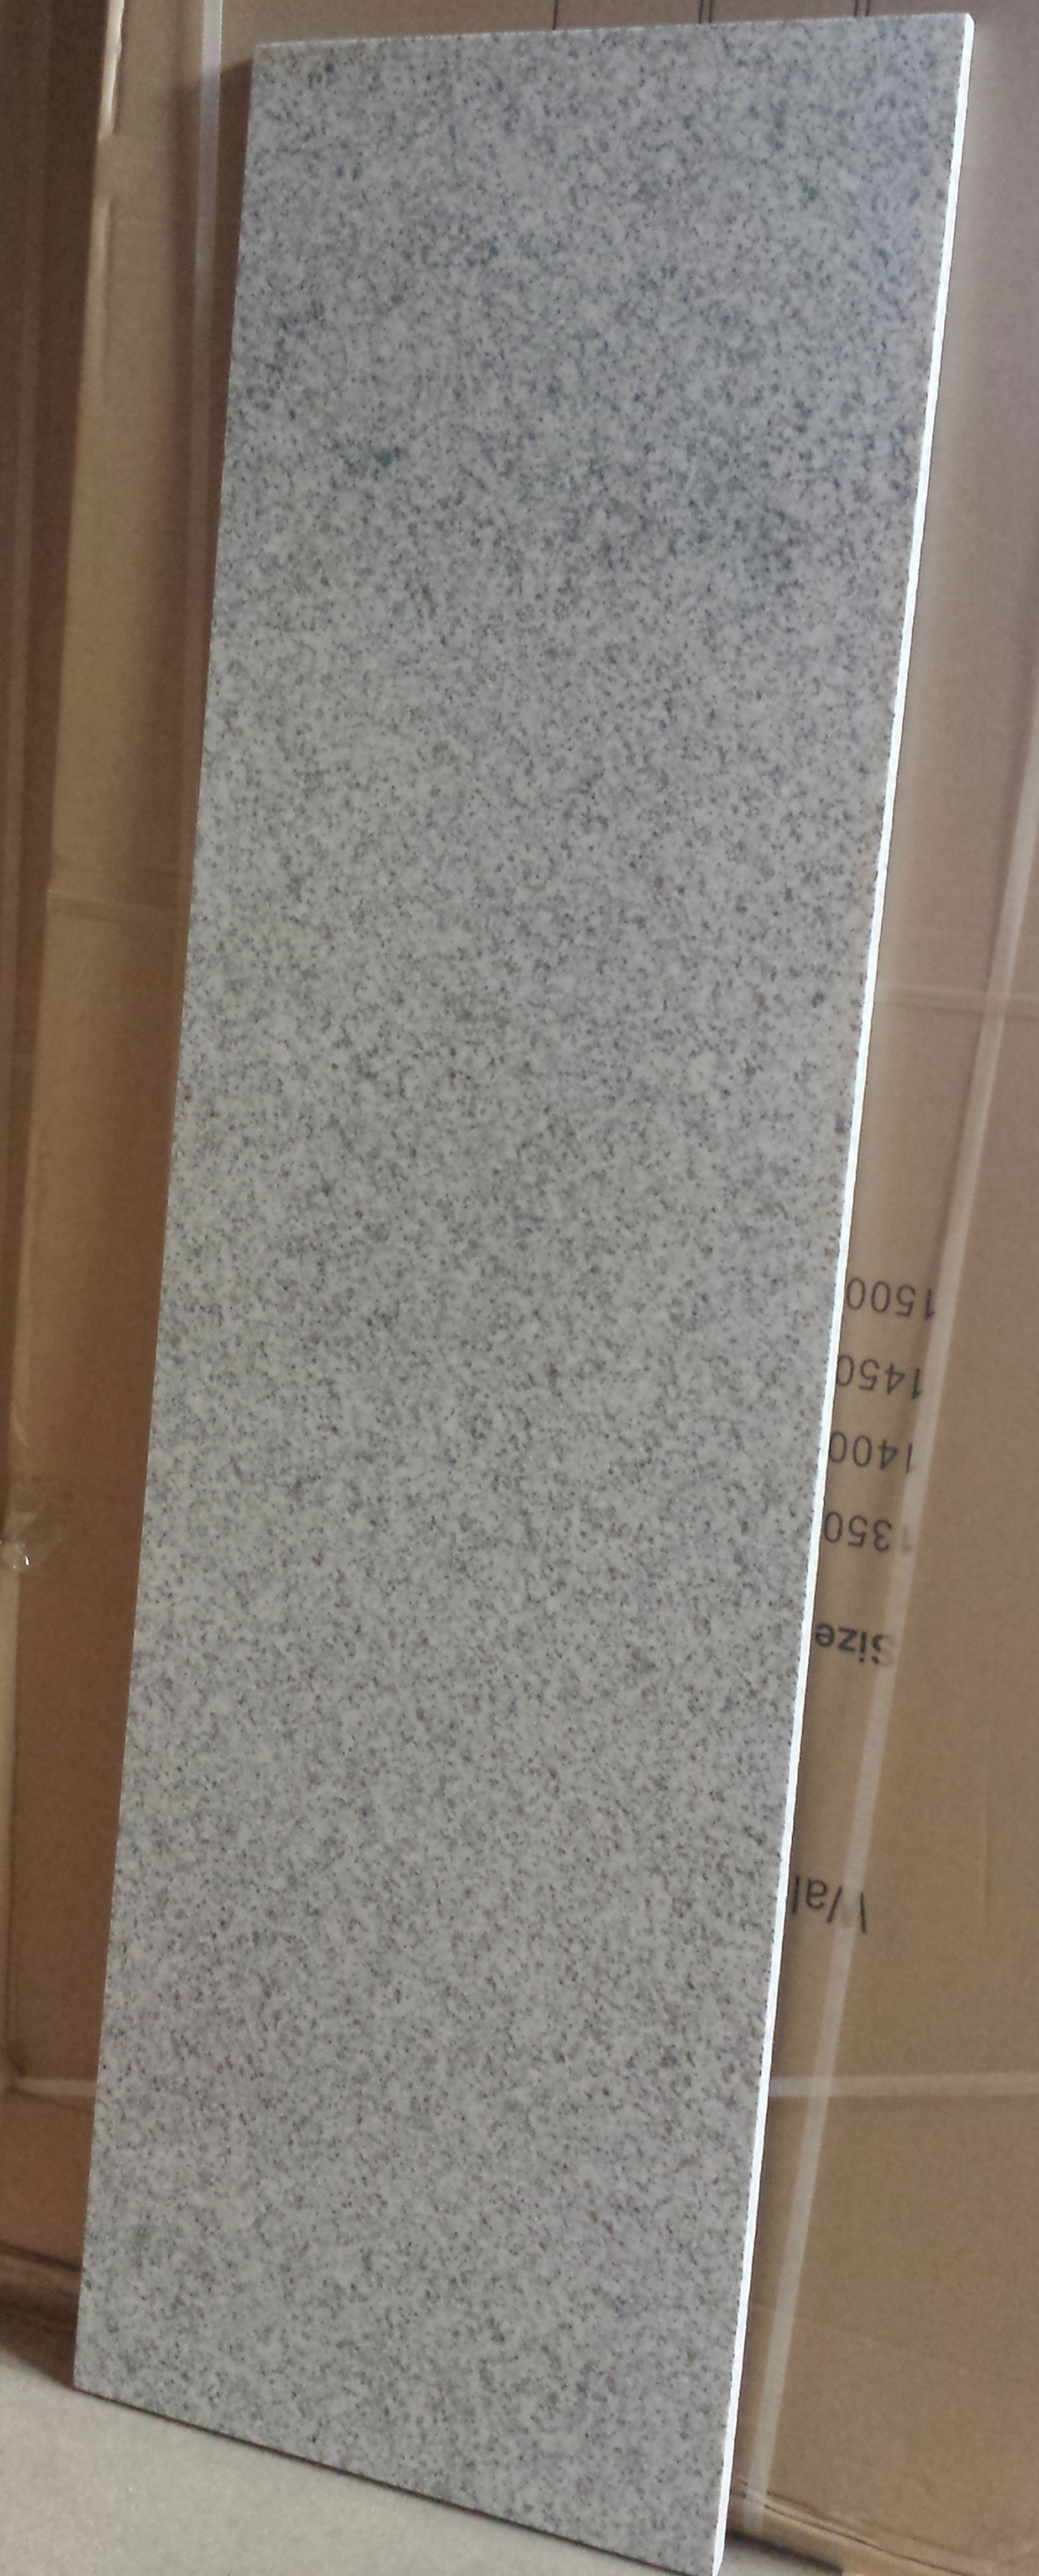 Granite Bench top for bathroom vanity [1800x470x20 mm]